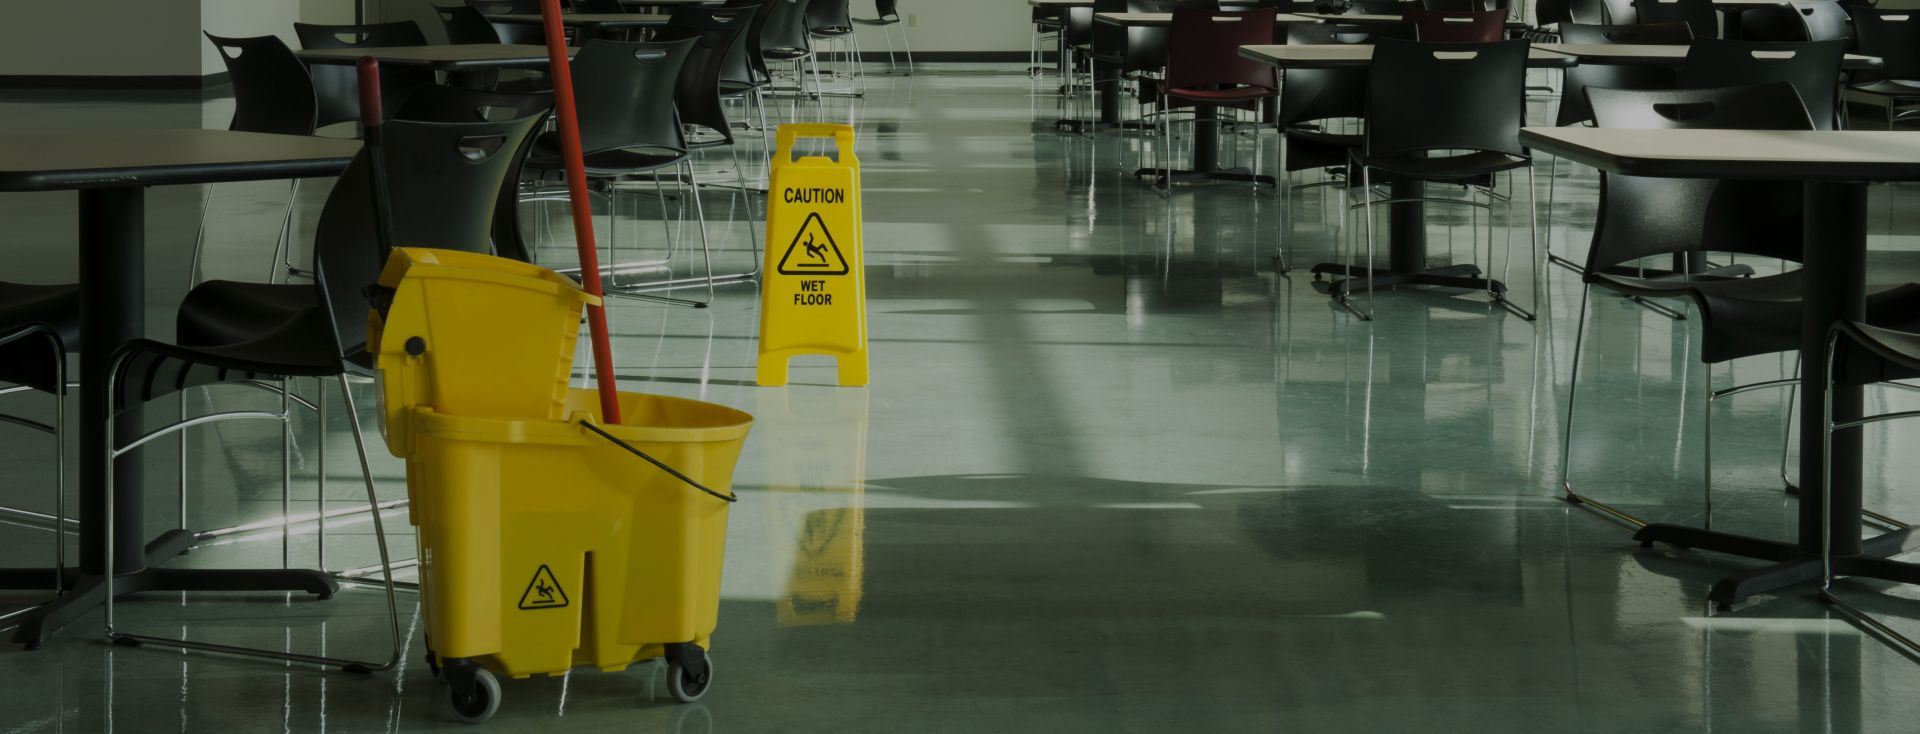 Halifax Janitorial Services